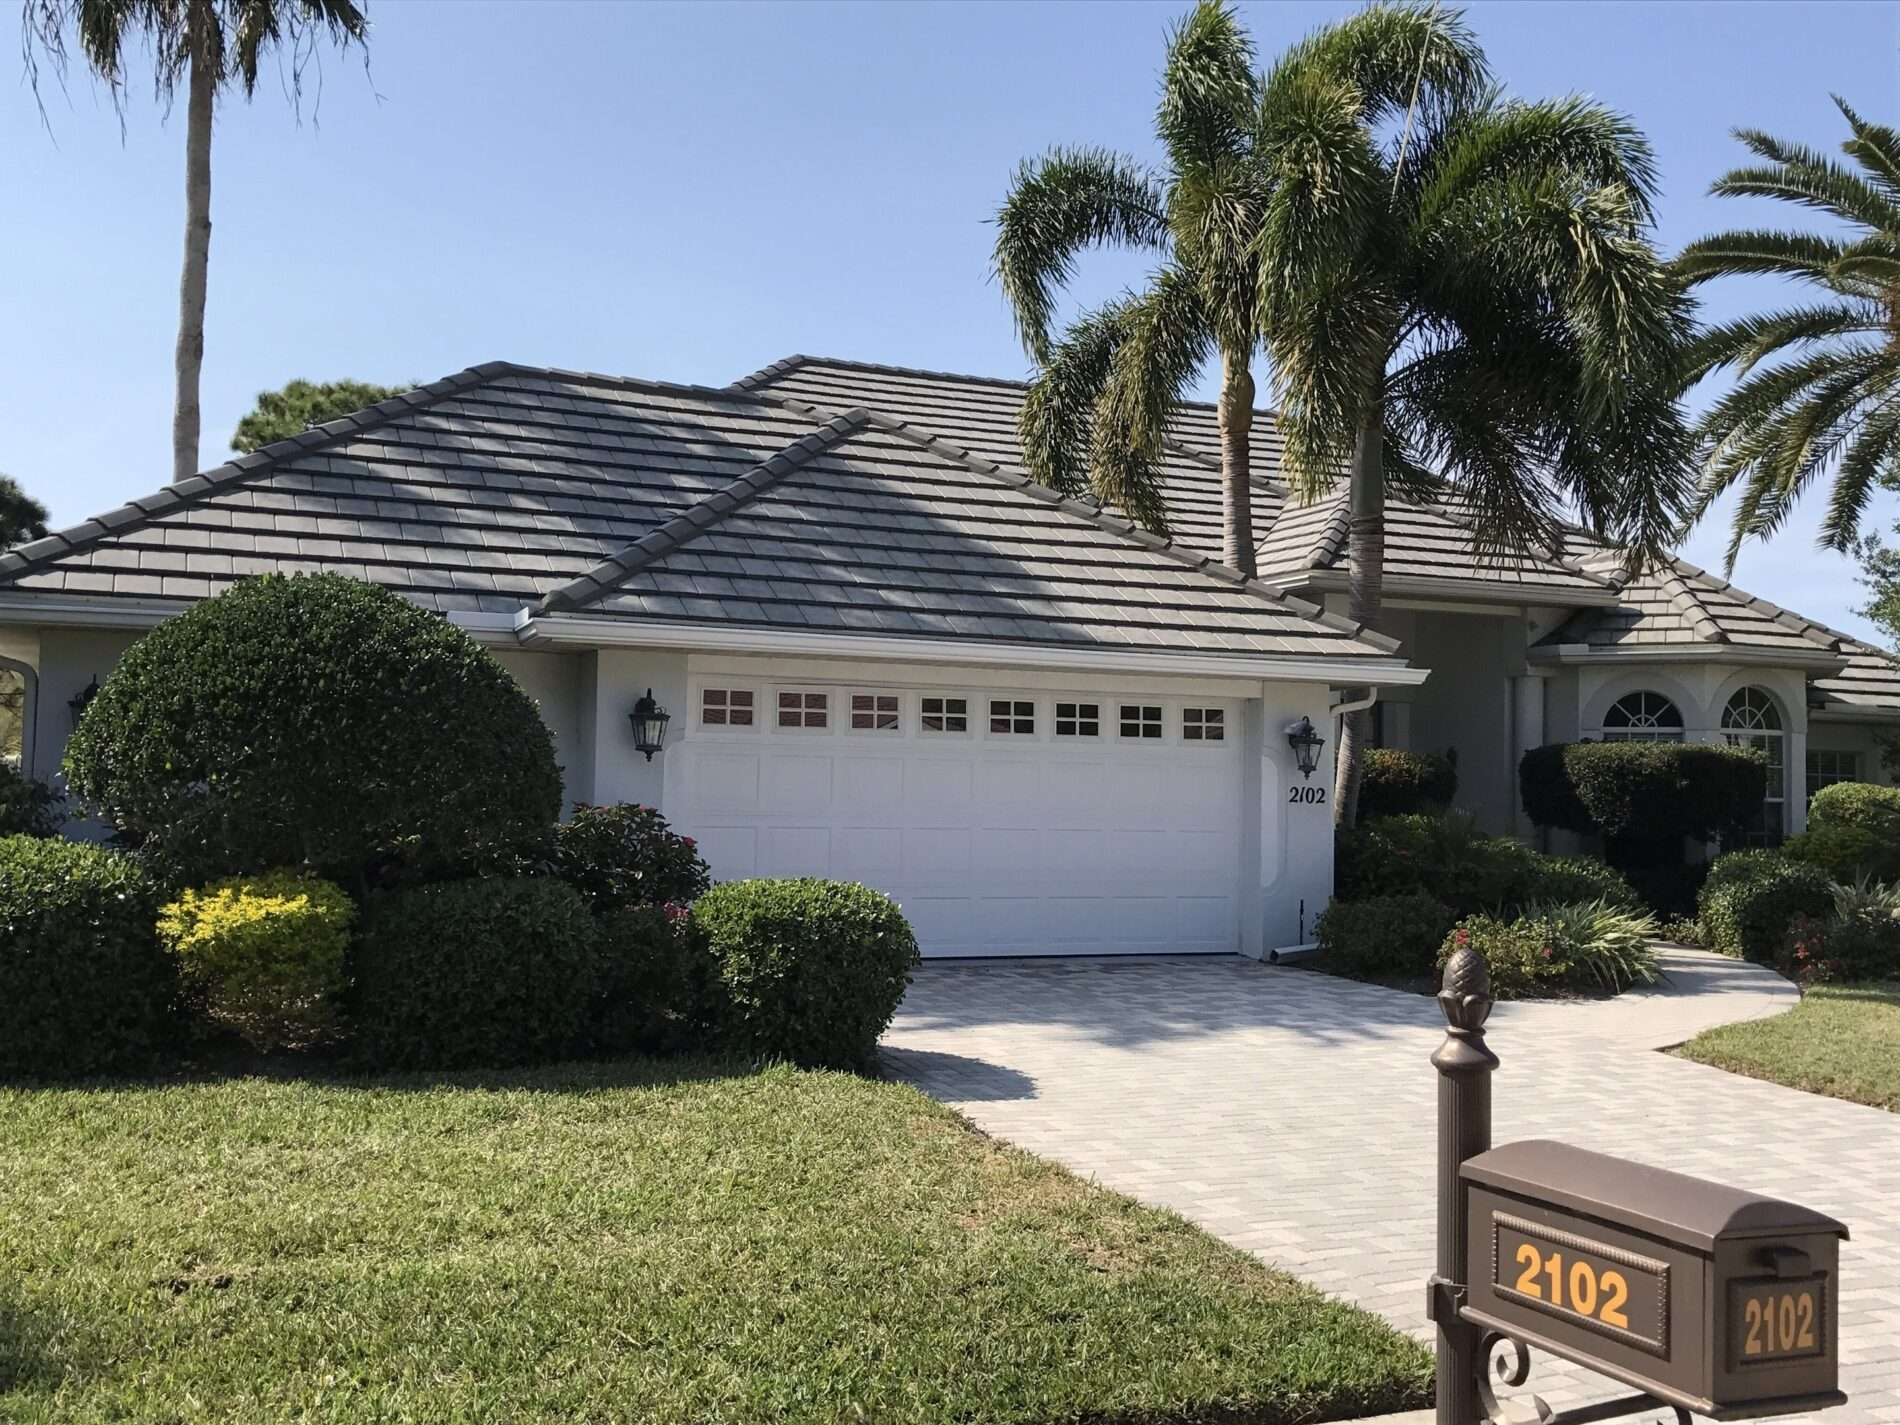 Roofing Service Venice